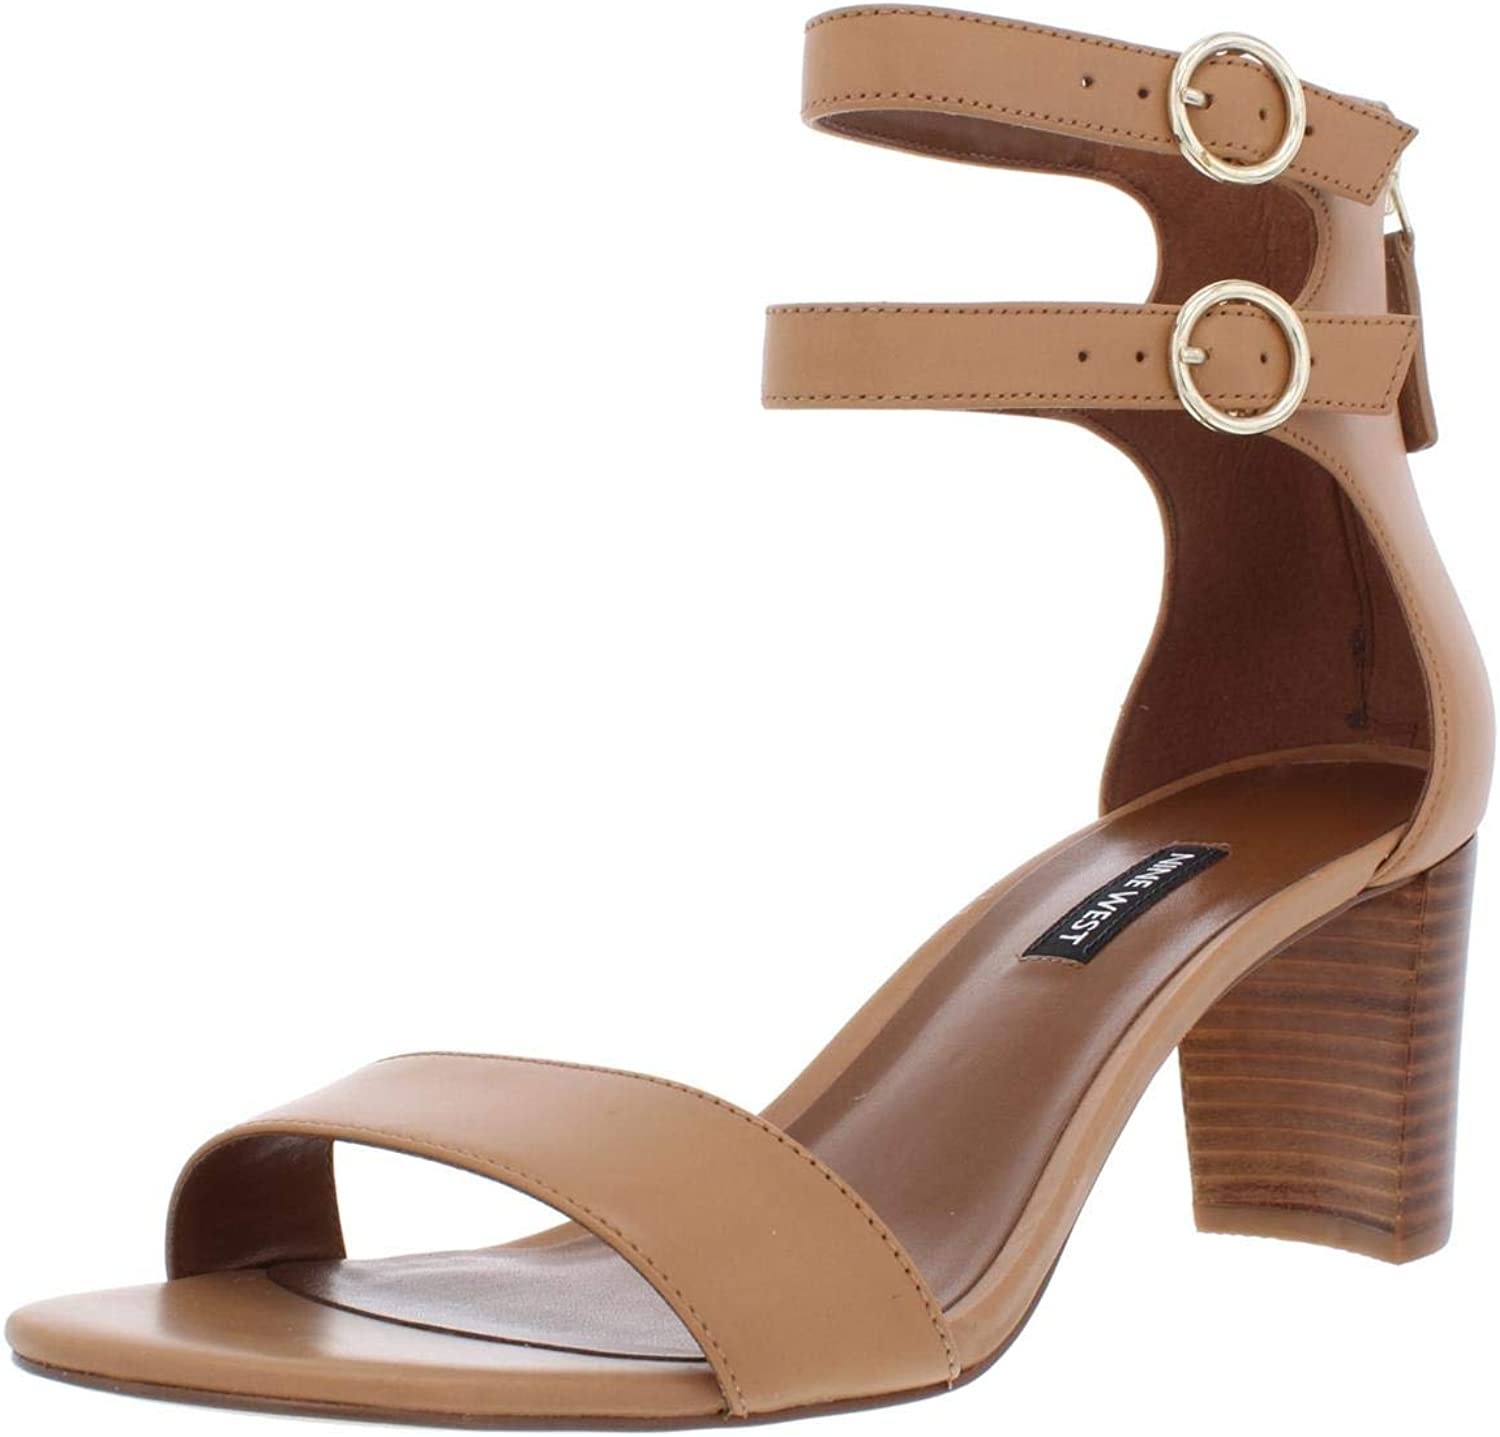 Nine West Womens Parlans Leather Strappy Dress Sandals